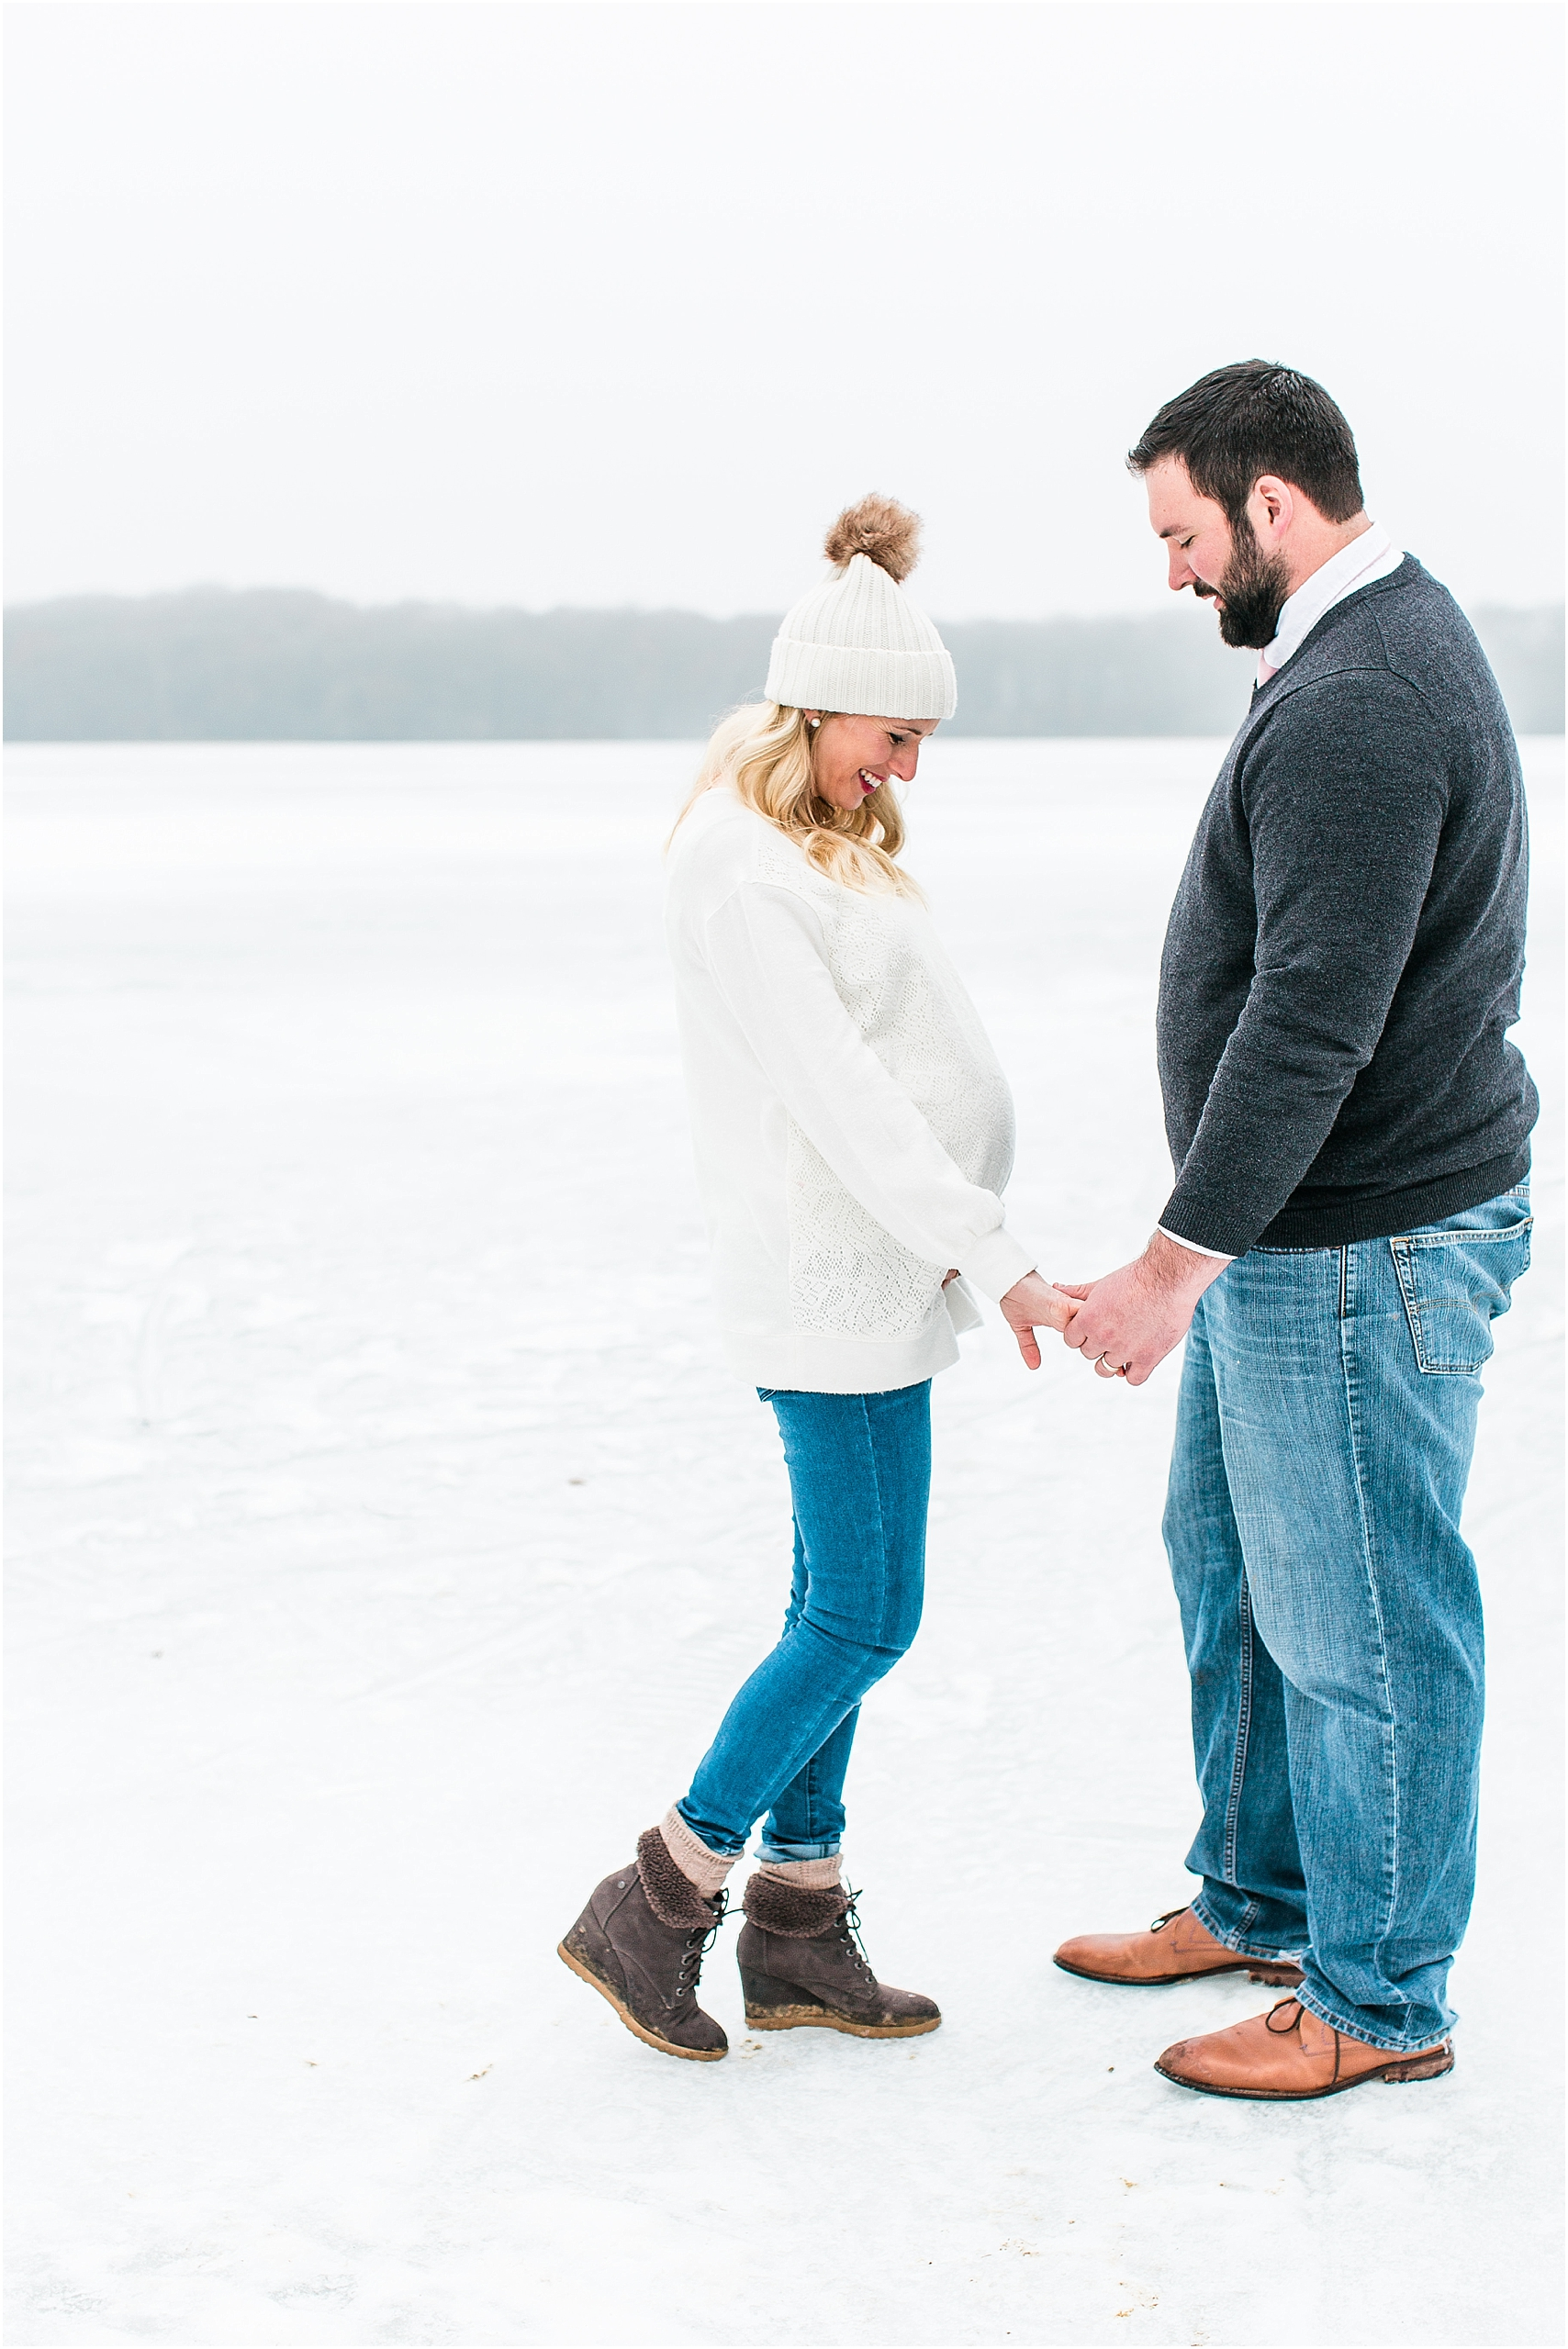 Minnesota winter maternity session Lake Ann Park Chanhassen photographed by Mallory Kiesow, Minnesota maternity photographer_006.jpg